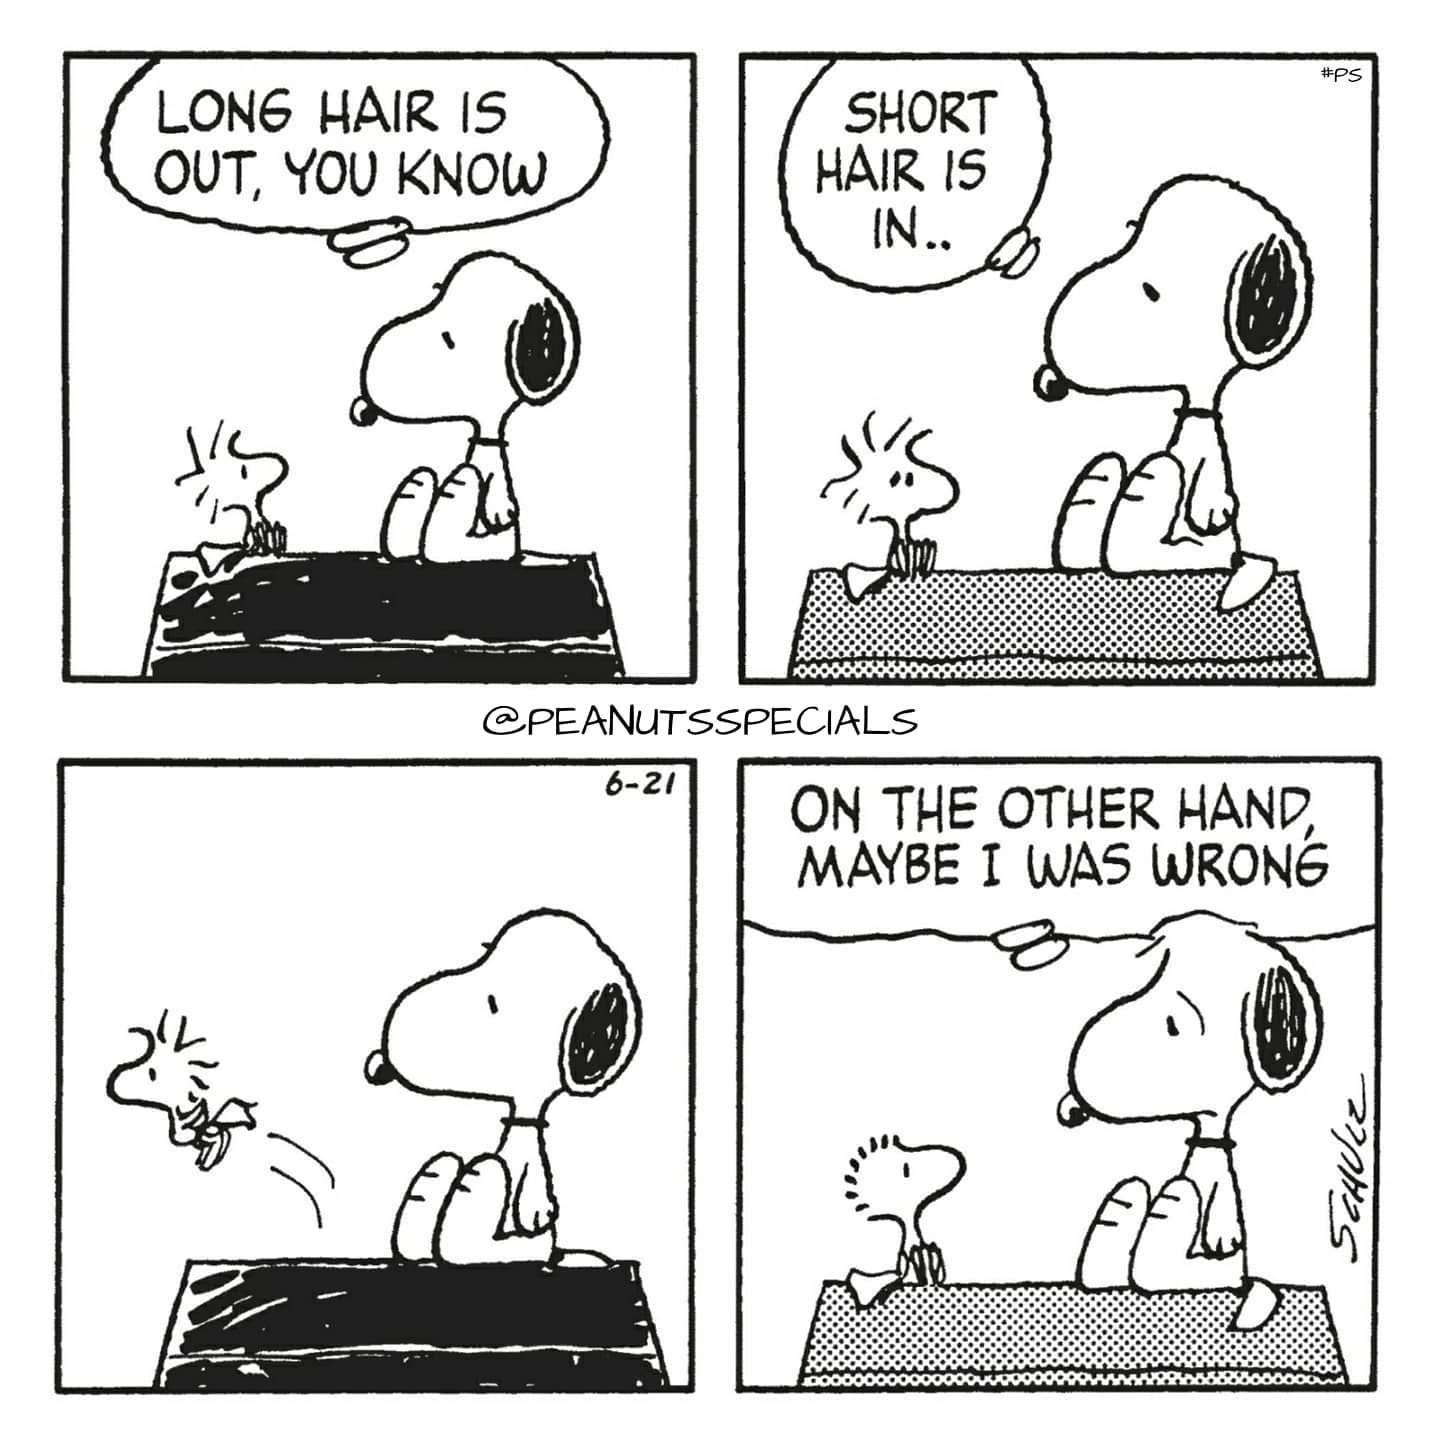 First Appearance June 21 1986 Snoopy Woodstock Longhair Long Hair Is Out Youknow Shorthair Short In On The Otherhand Other Hand Maybe I Was V 2020 G